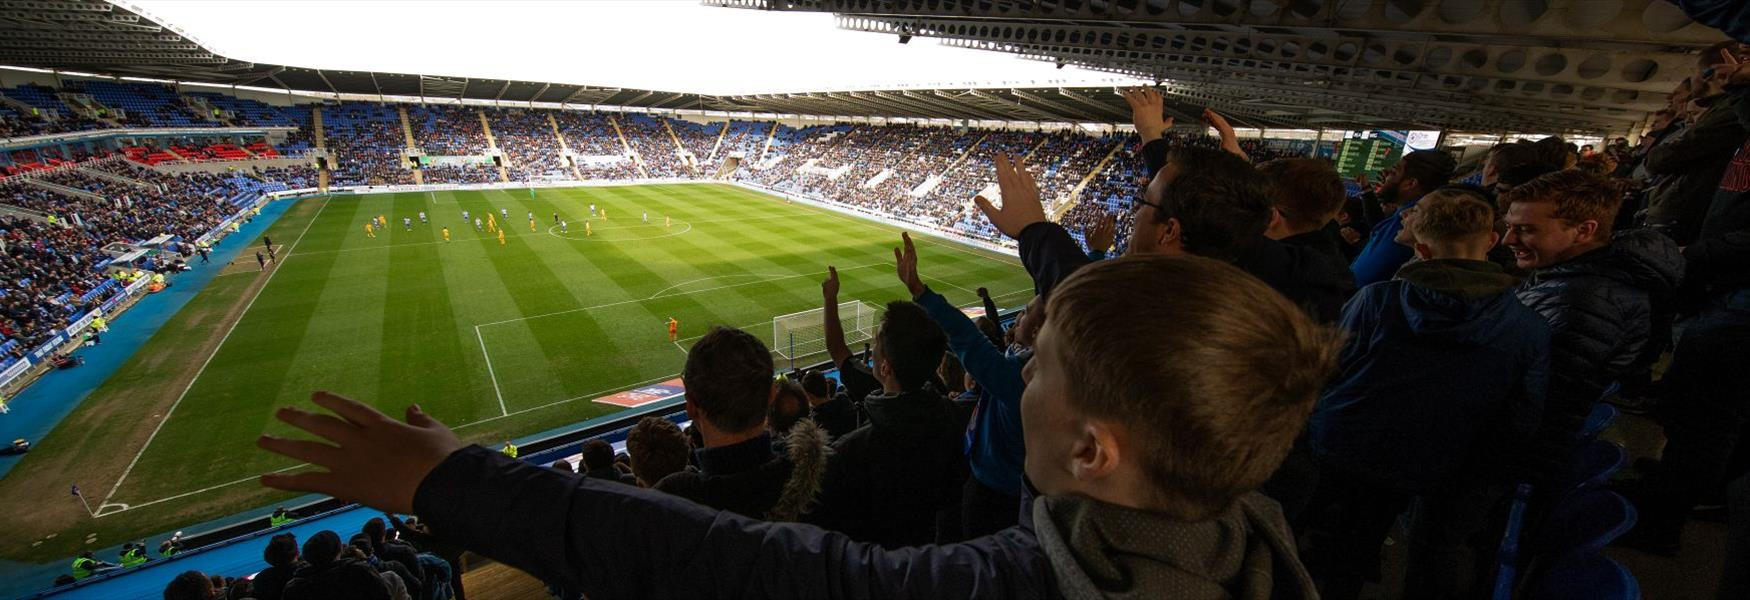 Enjoy a game at nearby Reading Football Club!